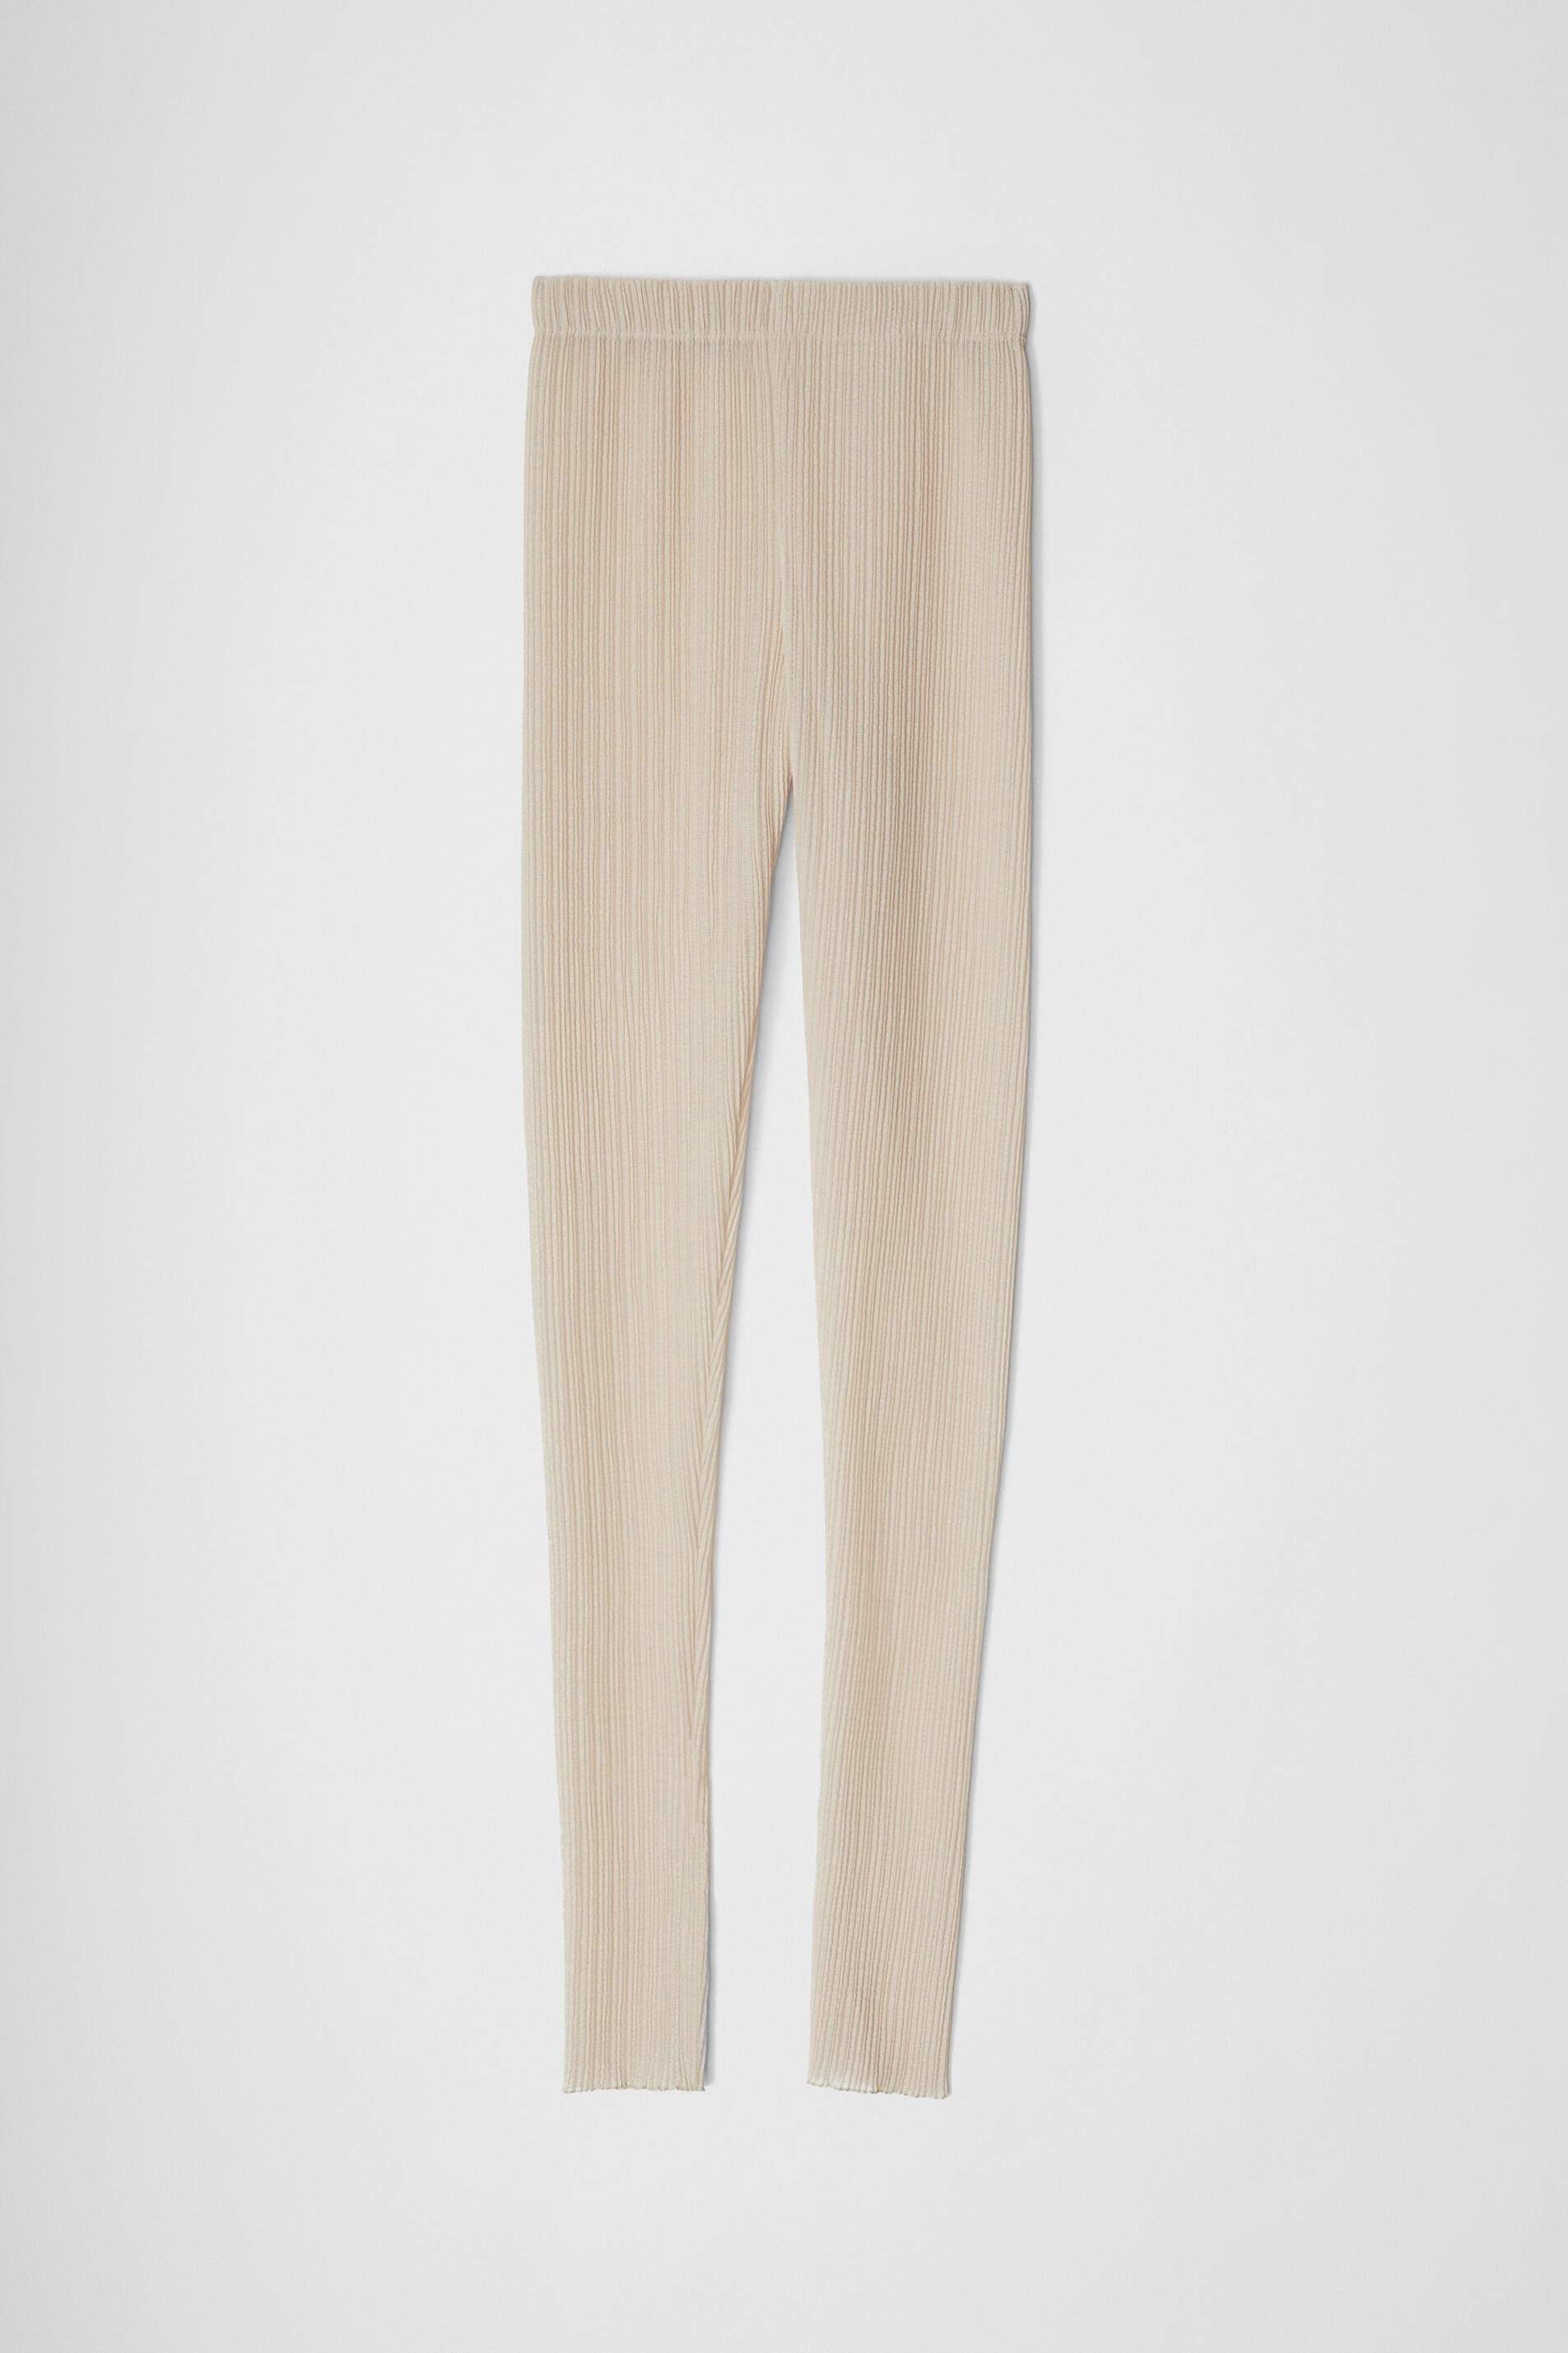 Leggings, beige, large